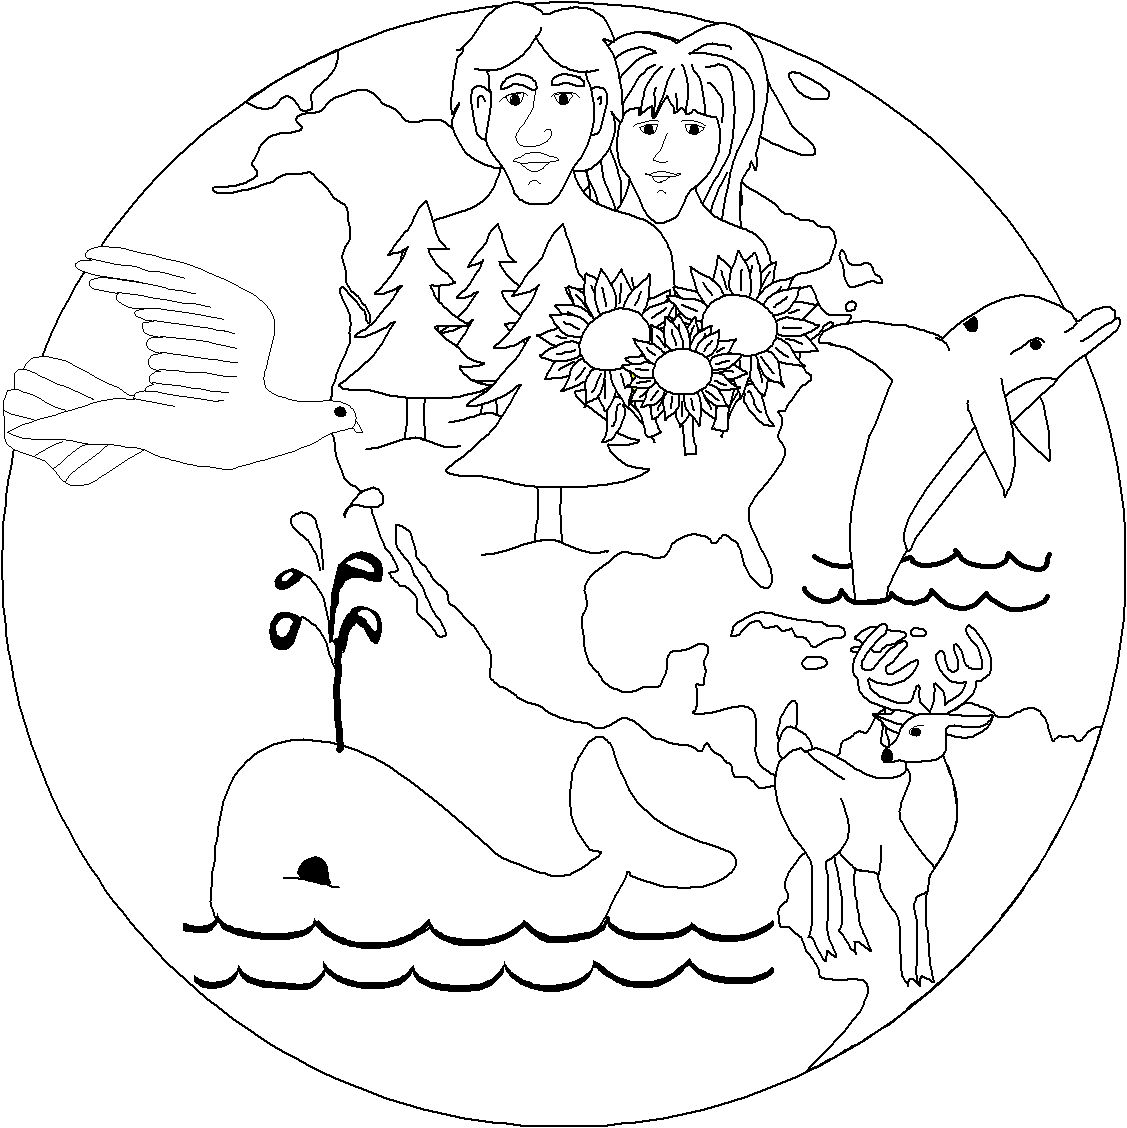 Creation Story Coloring Pages at GetDrawings.com | Free for ...